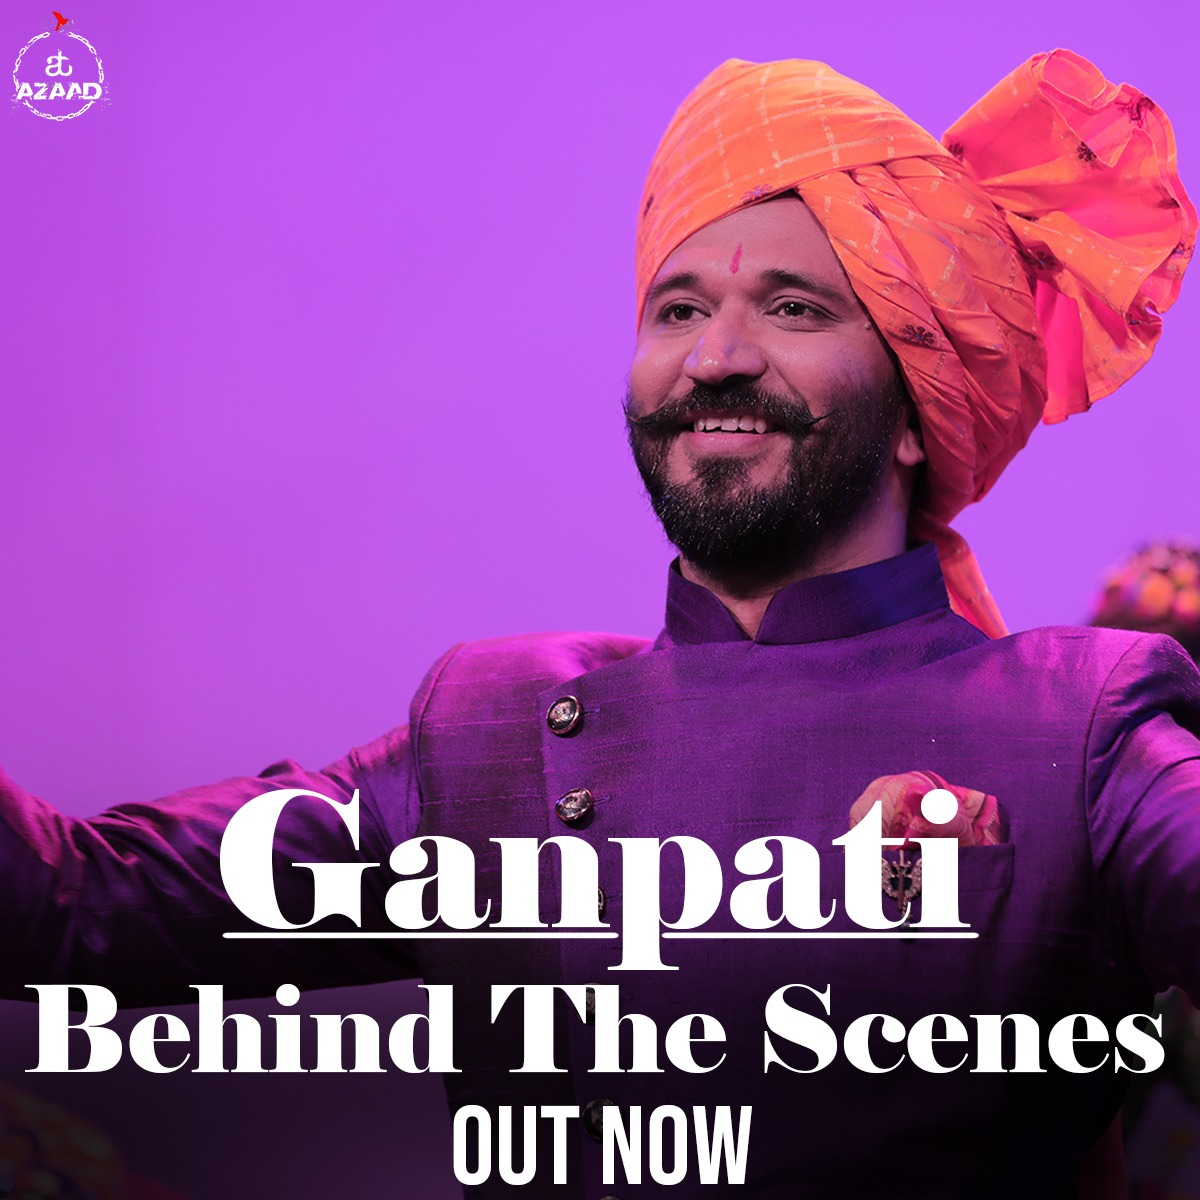 Taking you behind the scenes of 'Ganpati'. Shooting for this song was so energizing, as every beat transferred the positivity onto the sets. Check out the full video here: https://t.co/s5kLlAV9M6  #SongsofFaith #Ganpati #BehindTheScenes #AmitTrivedi #AmitTrivediMusic #ATAzaad https://t.co/IfrJ0zWFNx